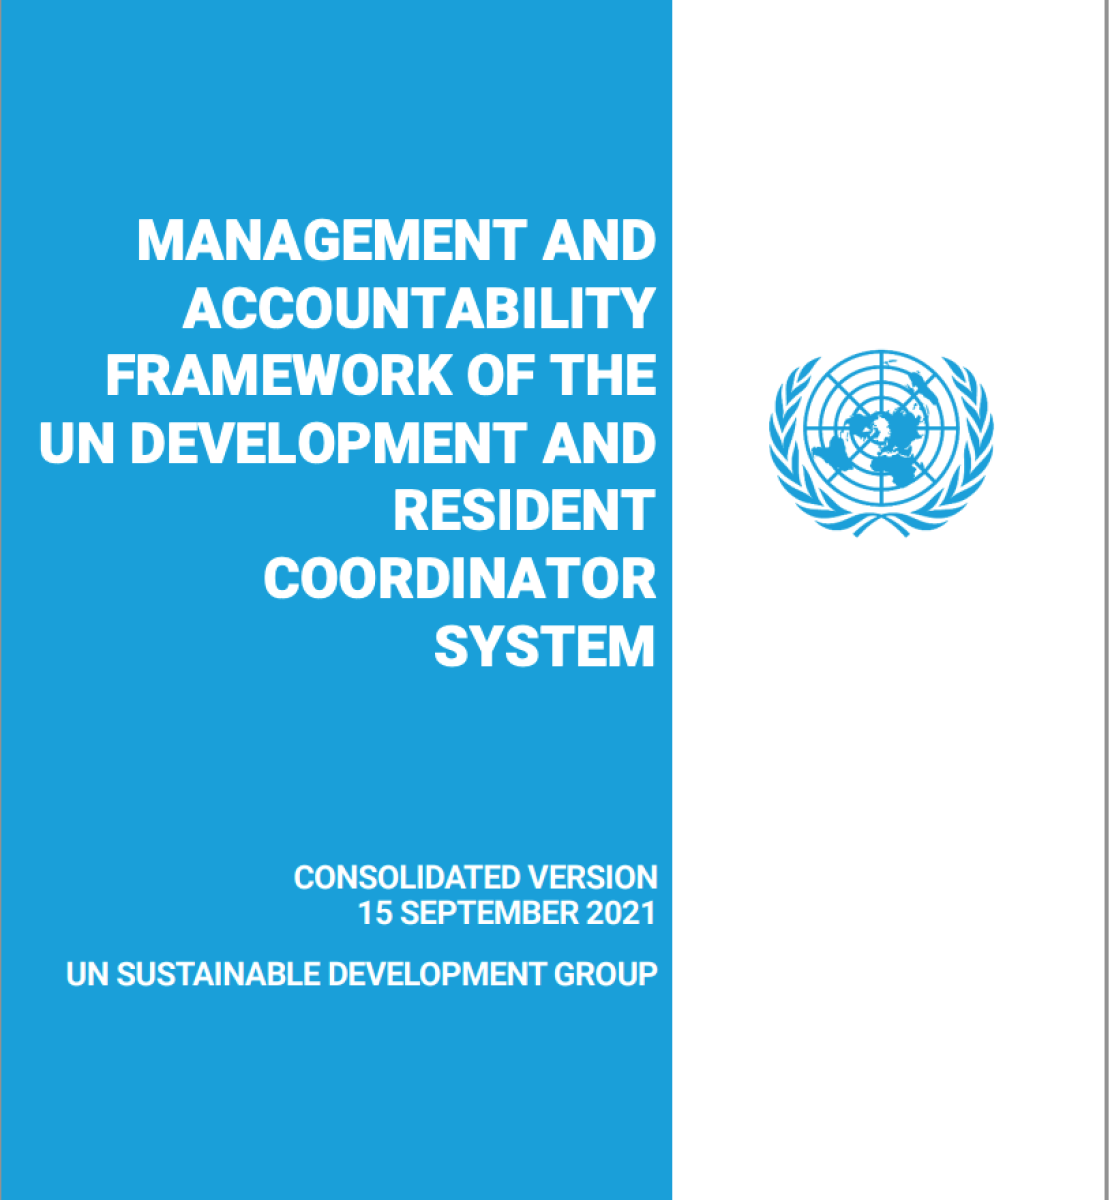 A light blue and white cover with the United Nations Logo on the right side.